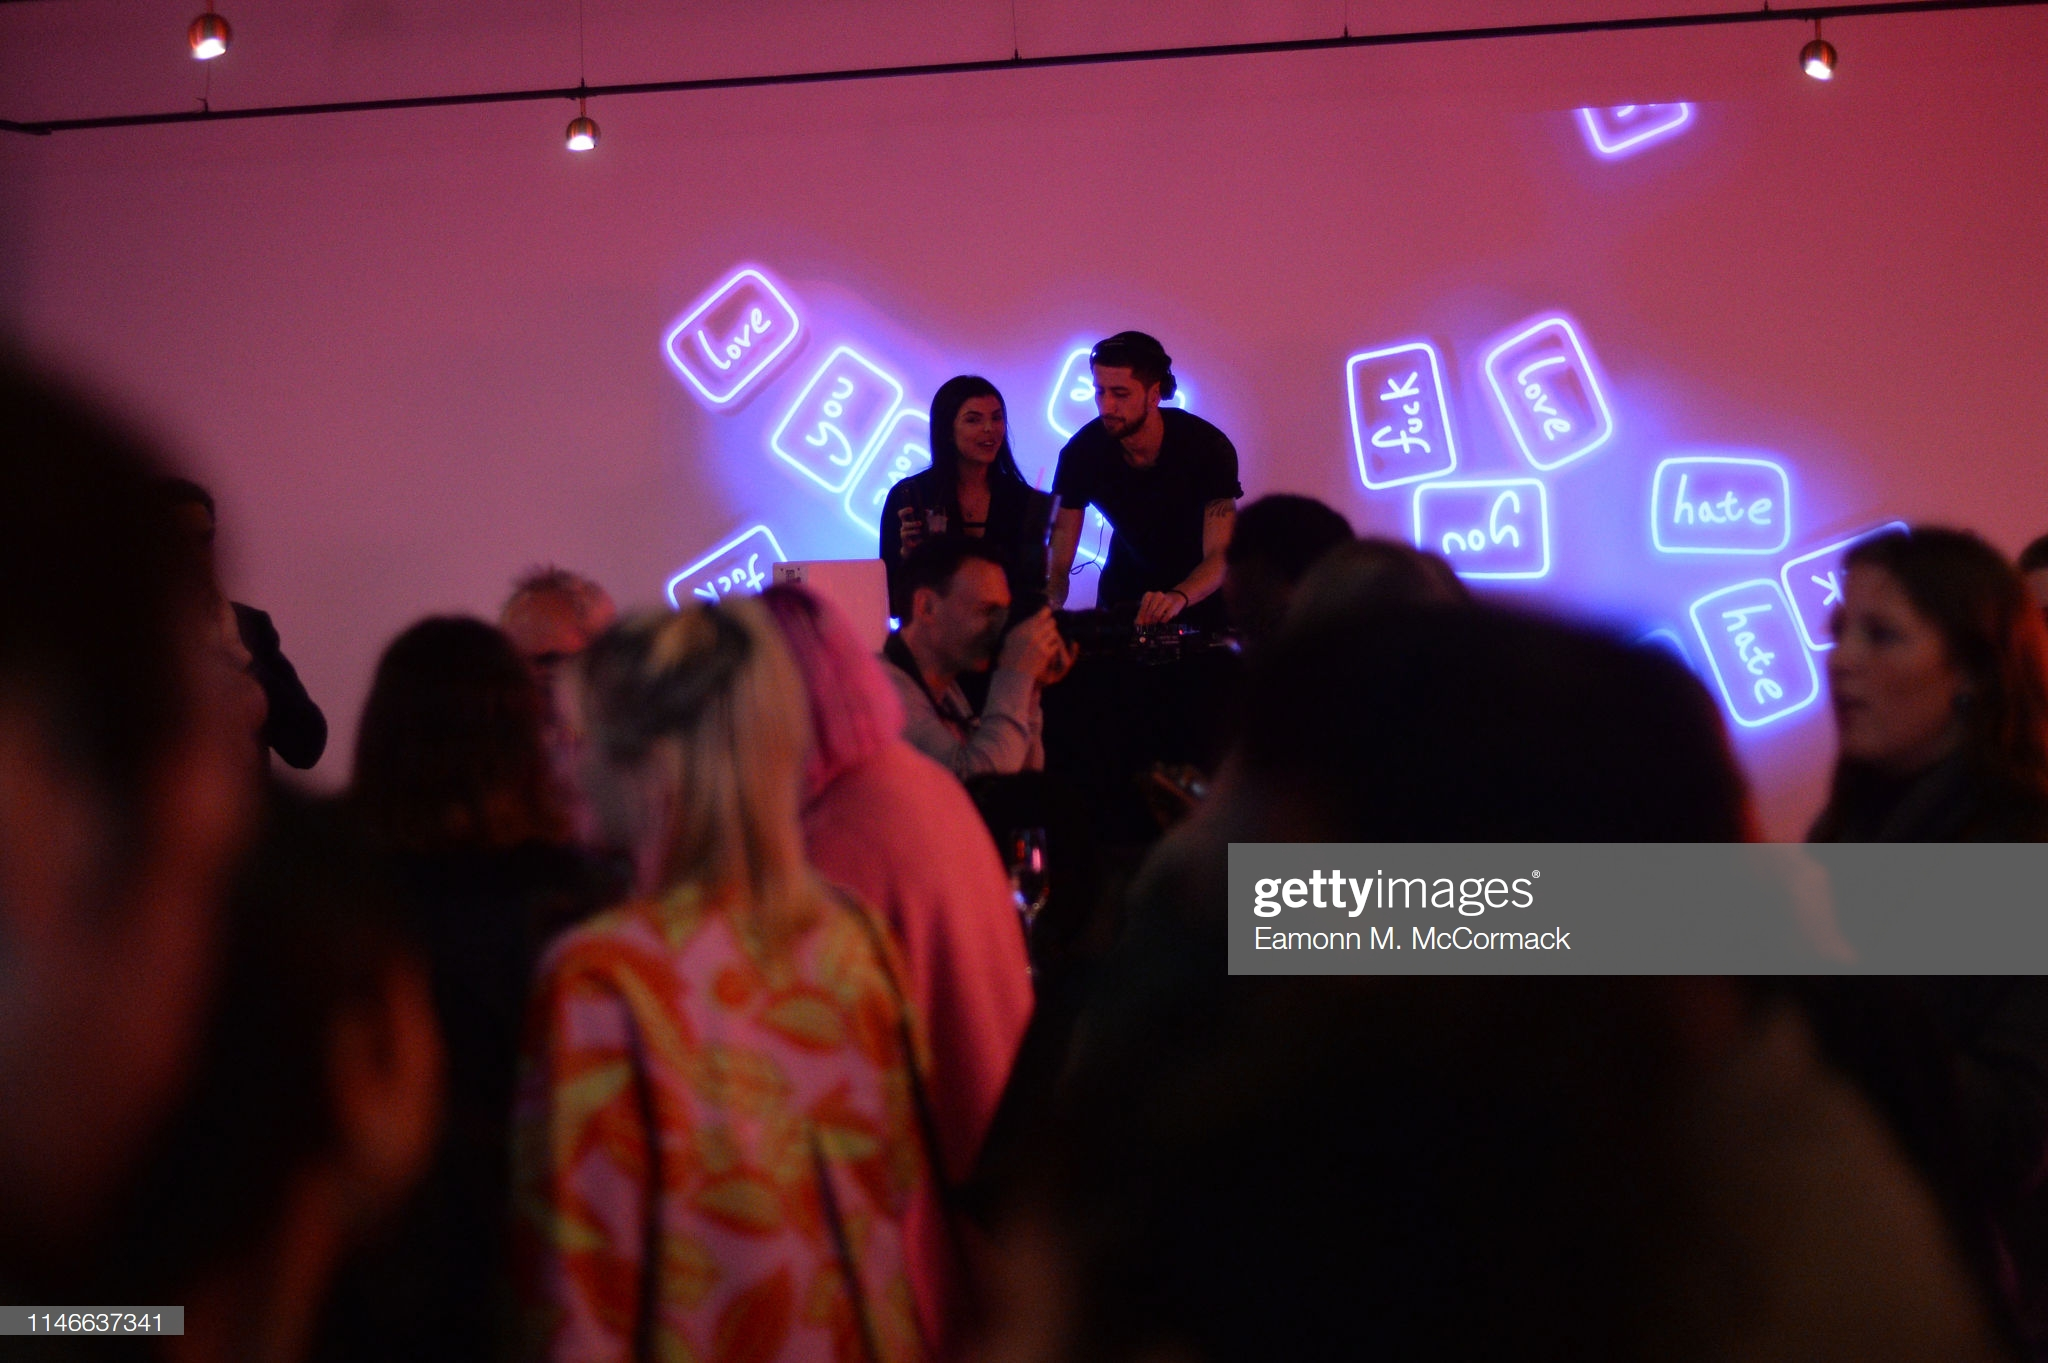 "LONDON, ENGLAND - MAY 02: Atmosphere during ""Futurama"" exhibtion by the TAX Collection at Imitate Modern on May 02, 2019 in London, England. (Photo by Eamonn M. McCormack/Getty Images) LONDON, ENGLAND - MAY 02: Atmosphere during ""Futurama"" exhibtion by the TAX Collection at Imitate Modern on May 02, 2019 in London, England. (Photo by Eamonn M. McCormack/Getty Images)"